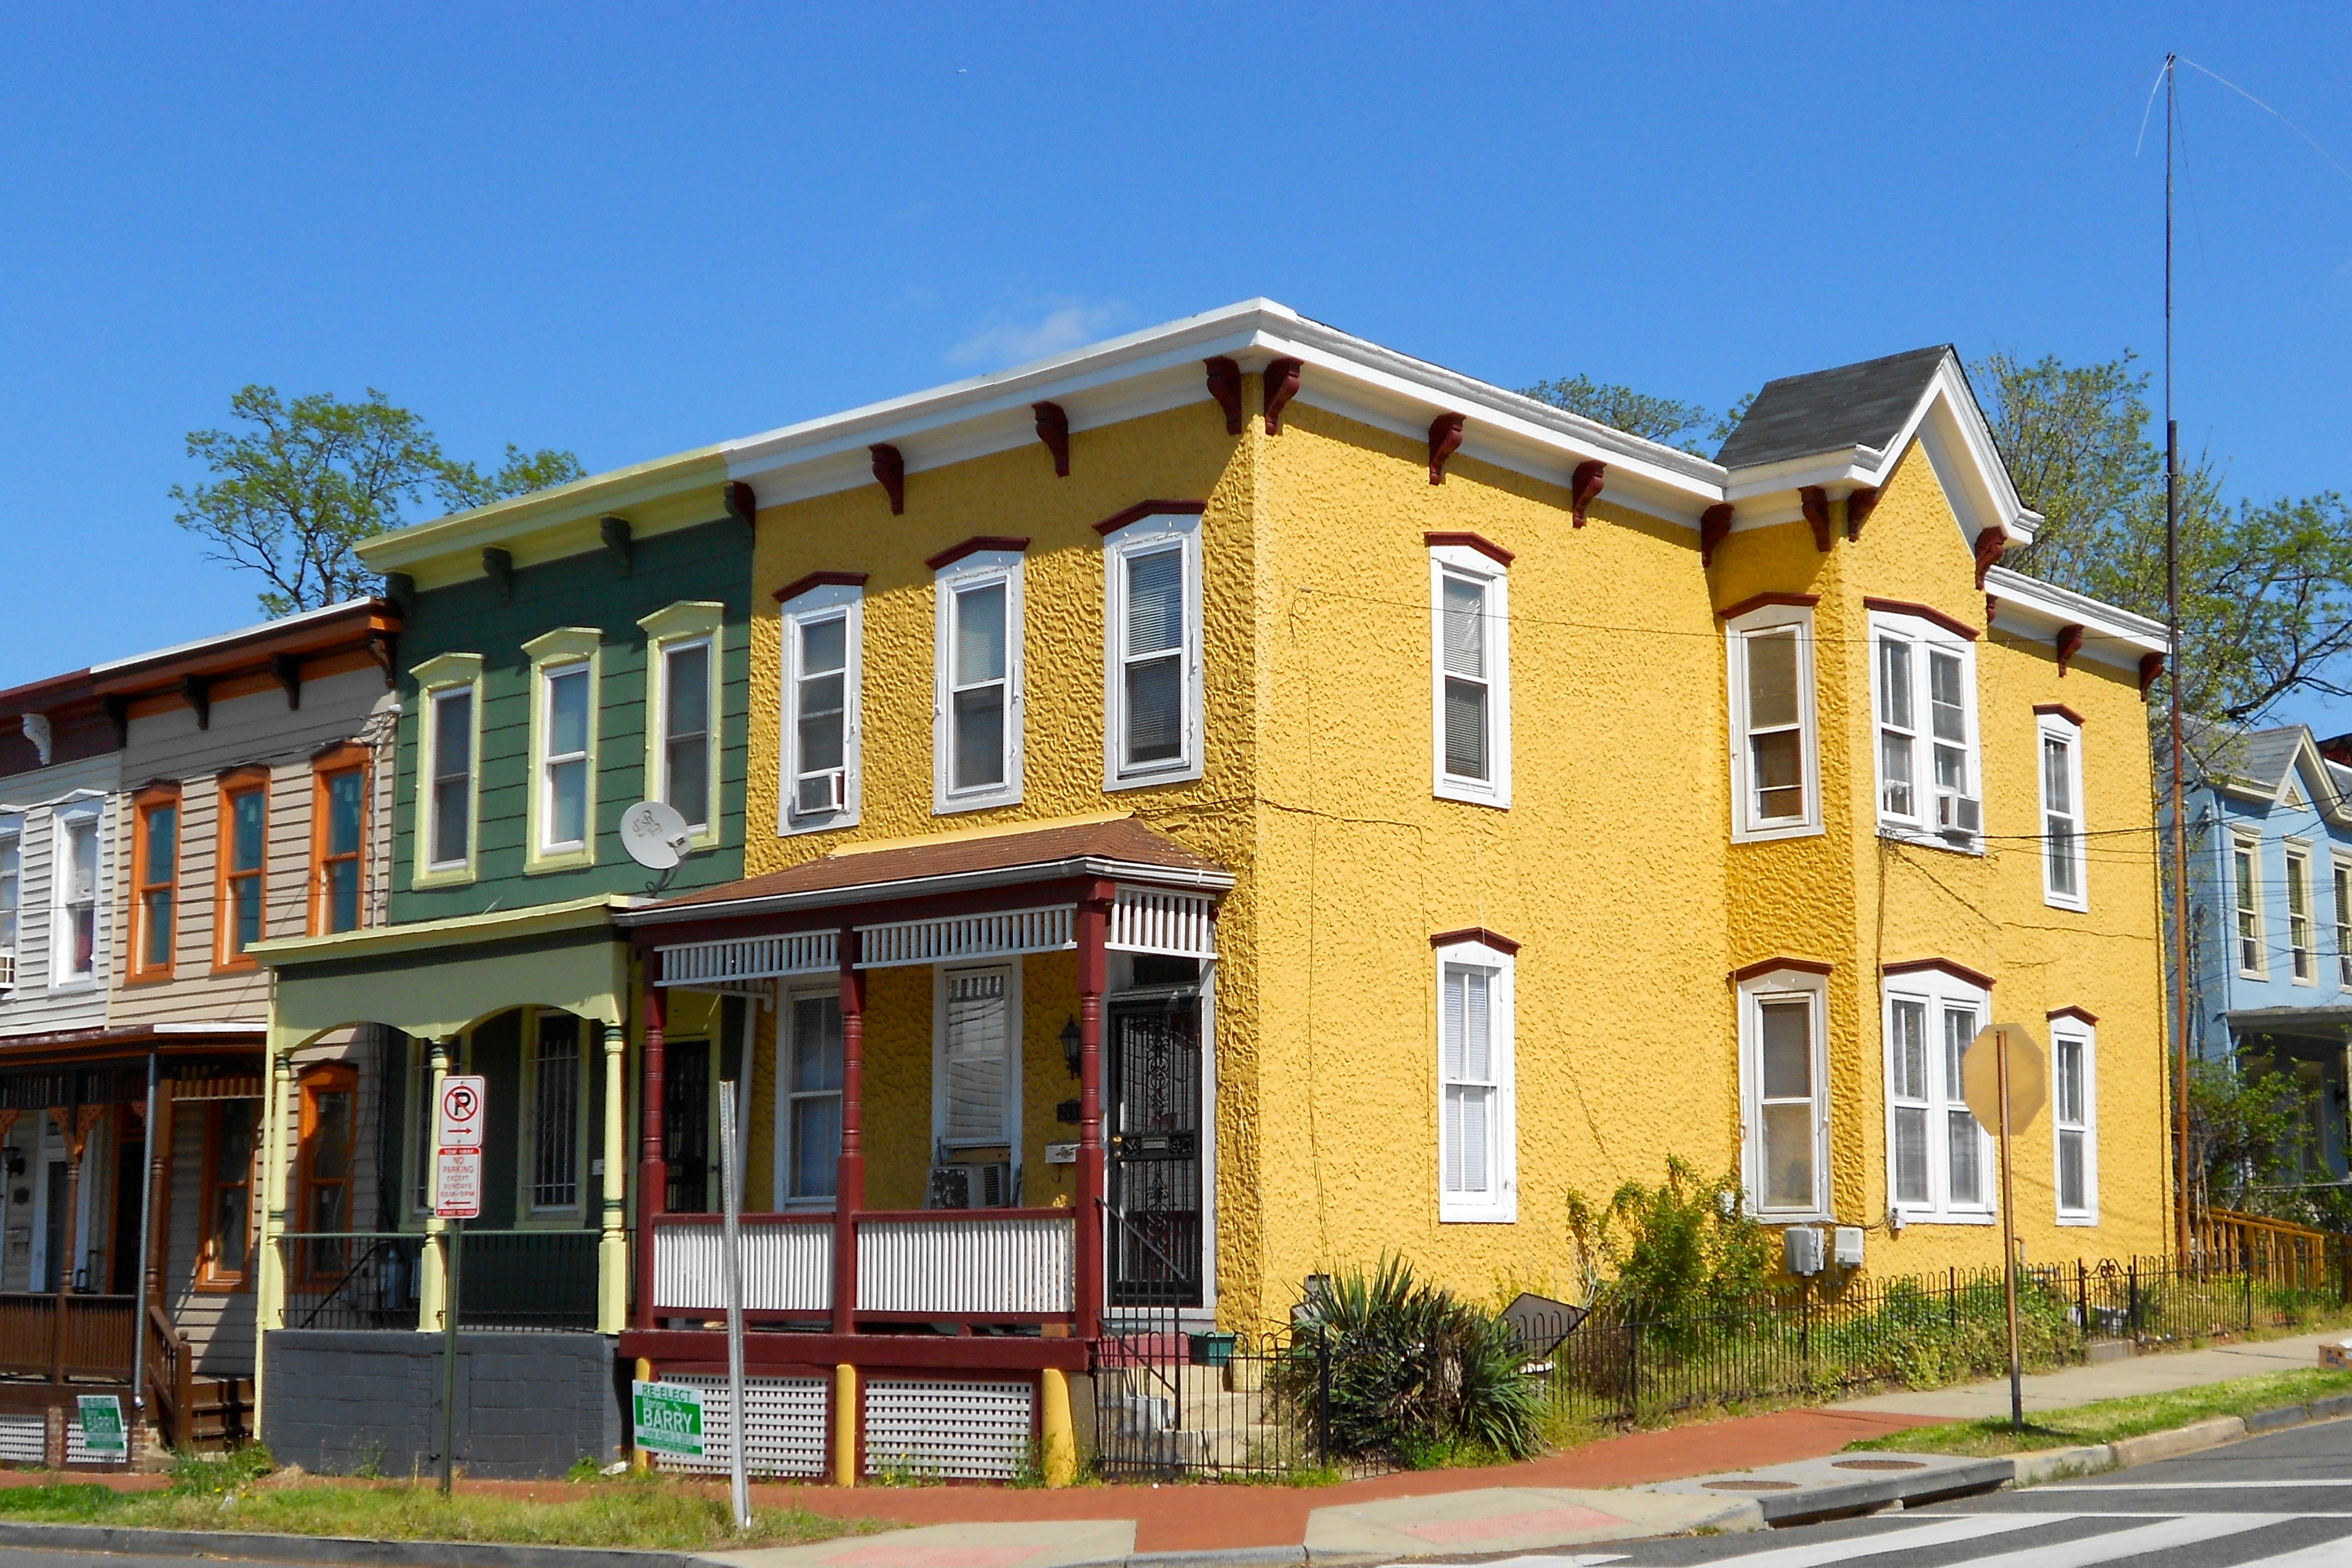 Four houses at 13th Street and W Street, SE in the Anacostia Historic District. The four houses are yellow, green, brown/orange, and white. The houses have porches.